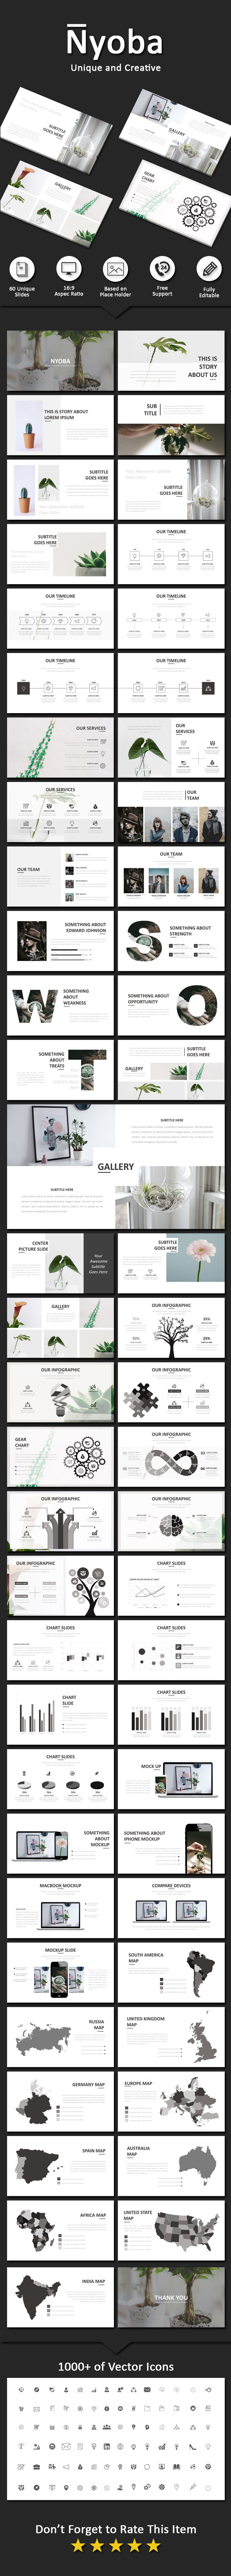 Nyoba Creative Powerpoint - Business PowerPoint Templates